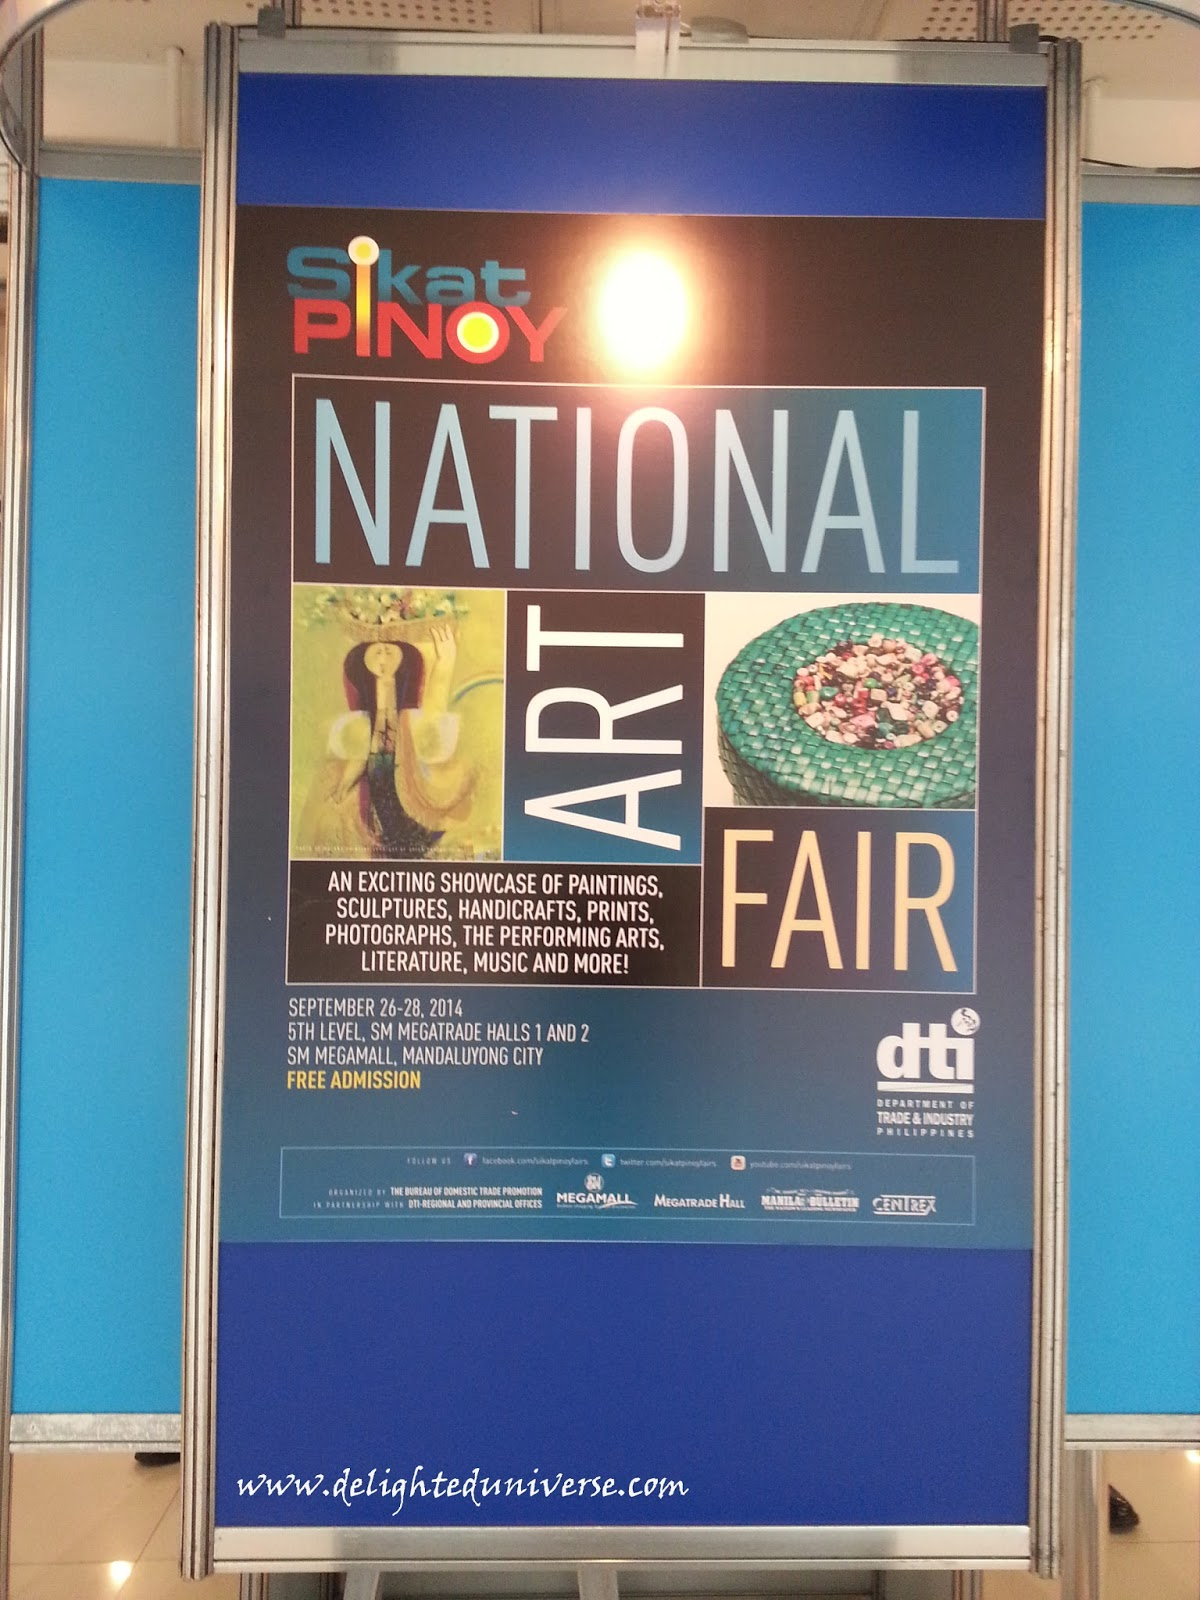 sikat pinoy national art fair